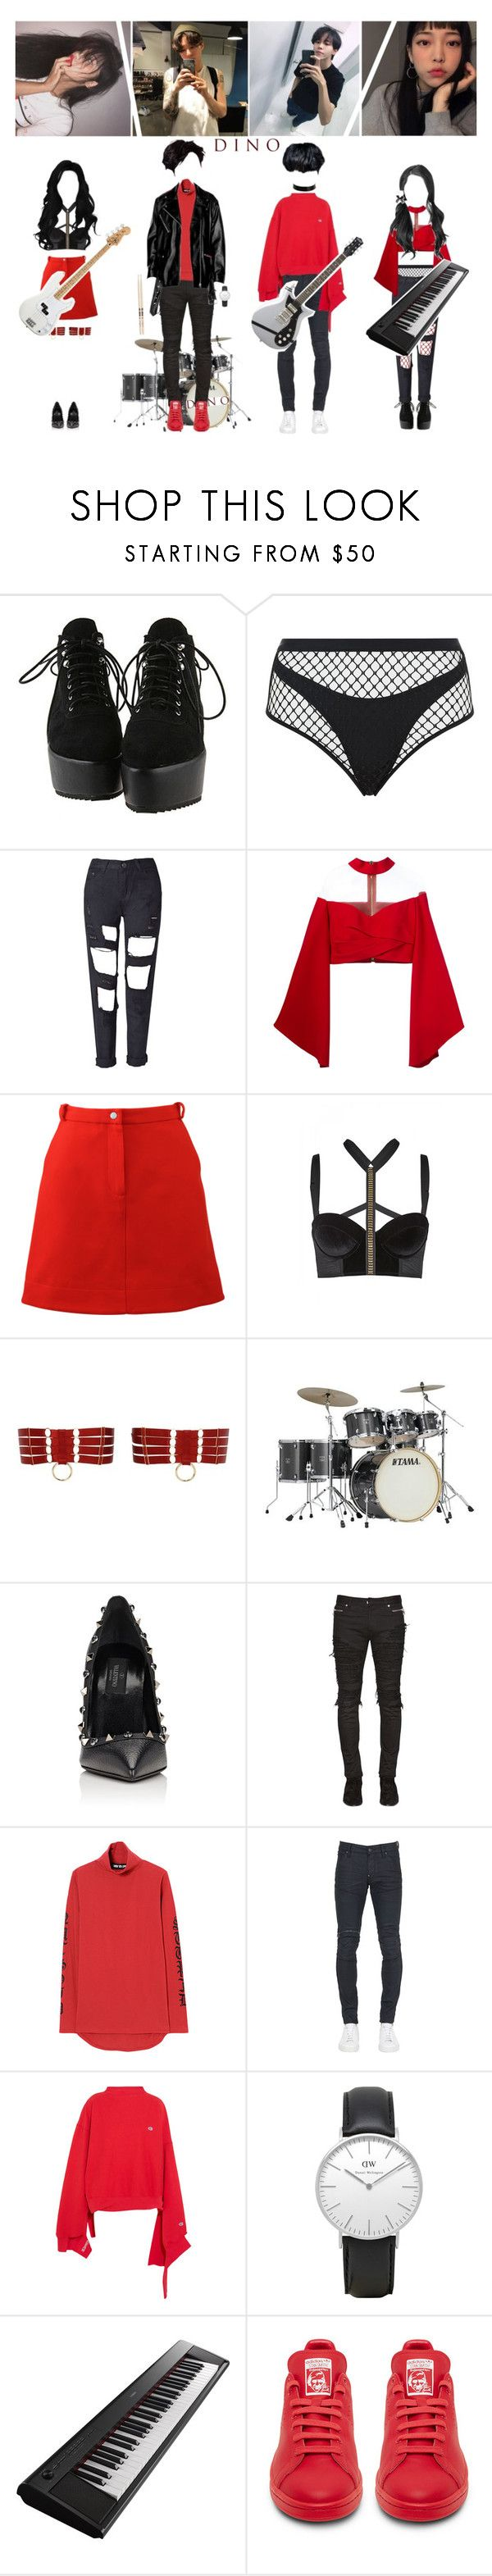 """DINO BAND SCENES 